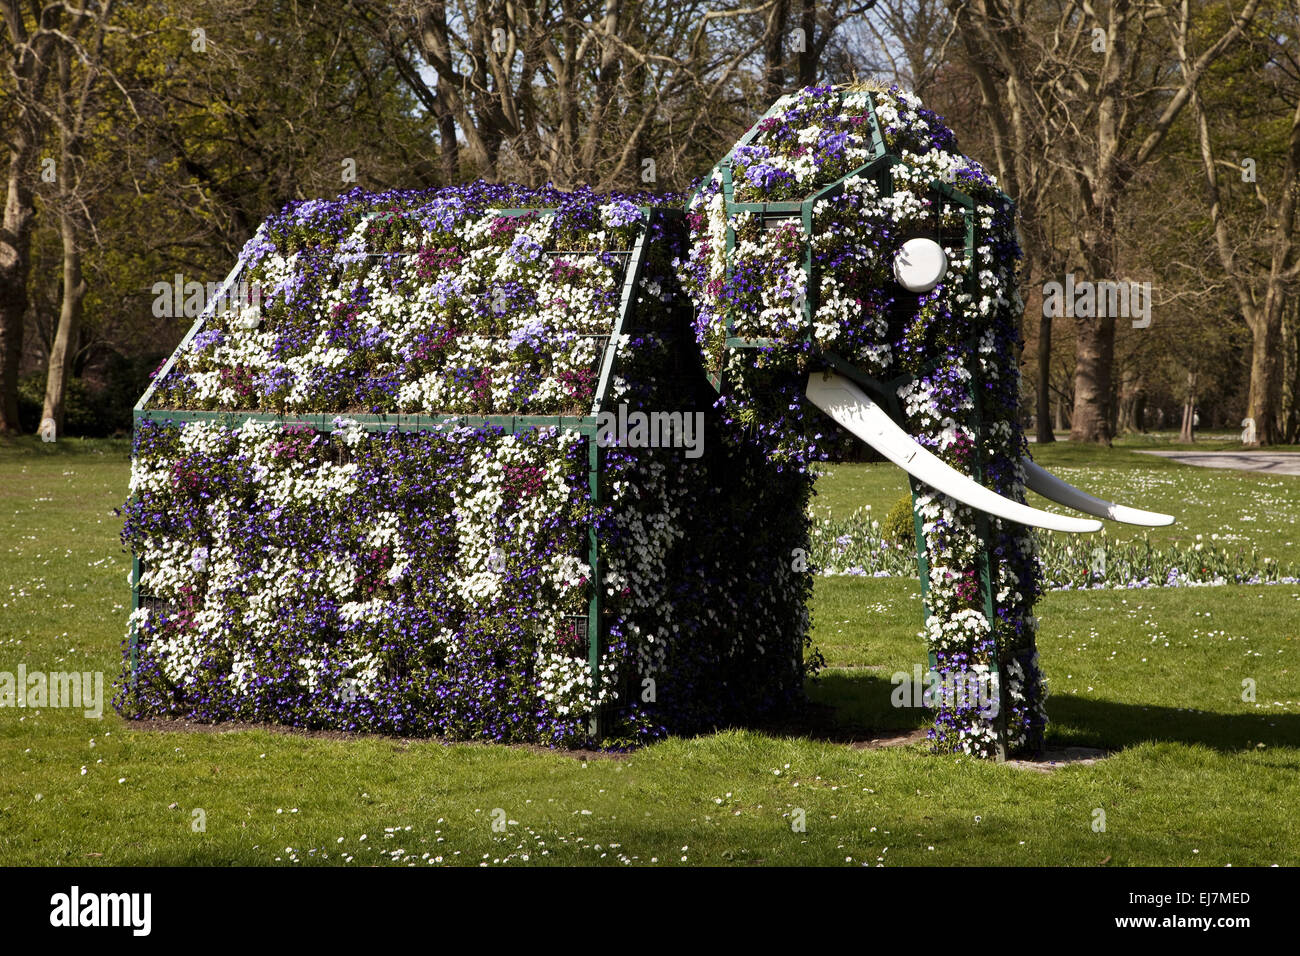 Elephant made ​​of flowers, Hamm, Germany - Stock Image